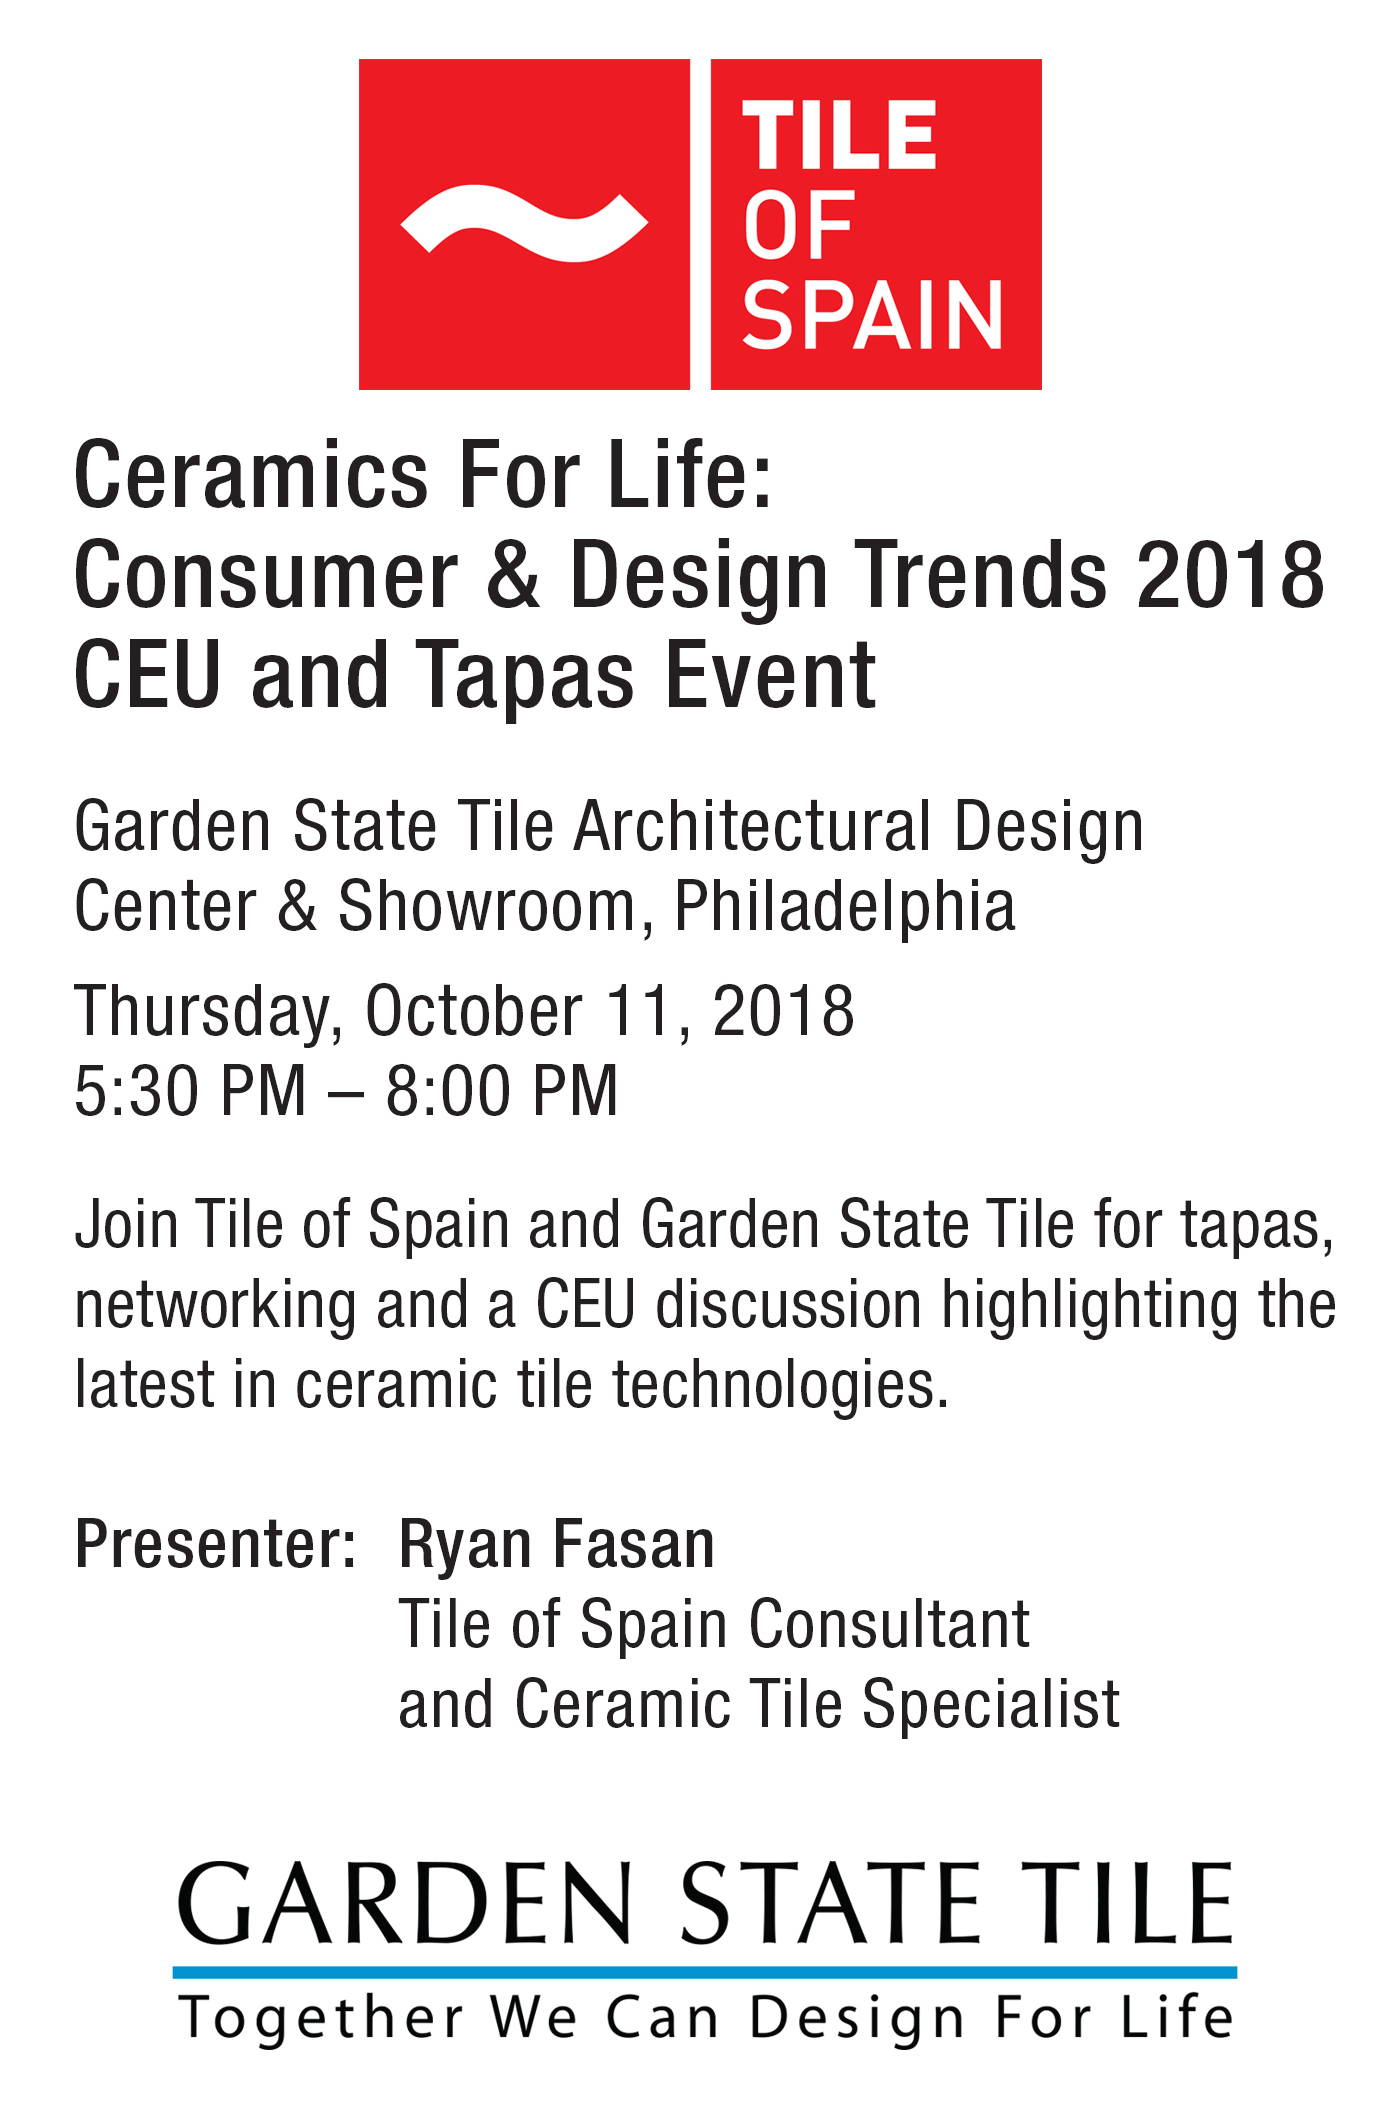 Tile Of Spain Ceramics For Life 2018 Ceu Event With Garden State